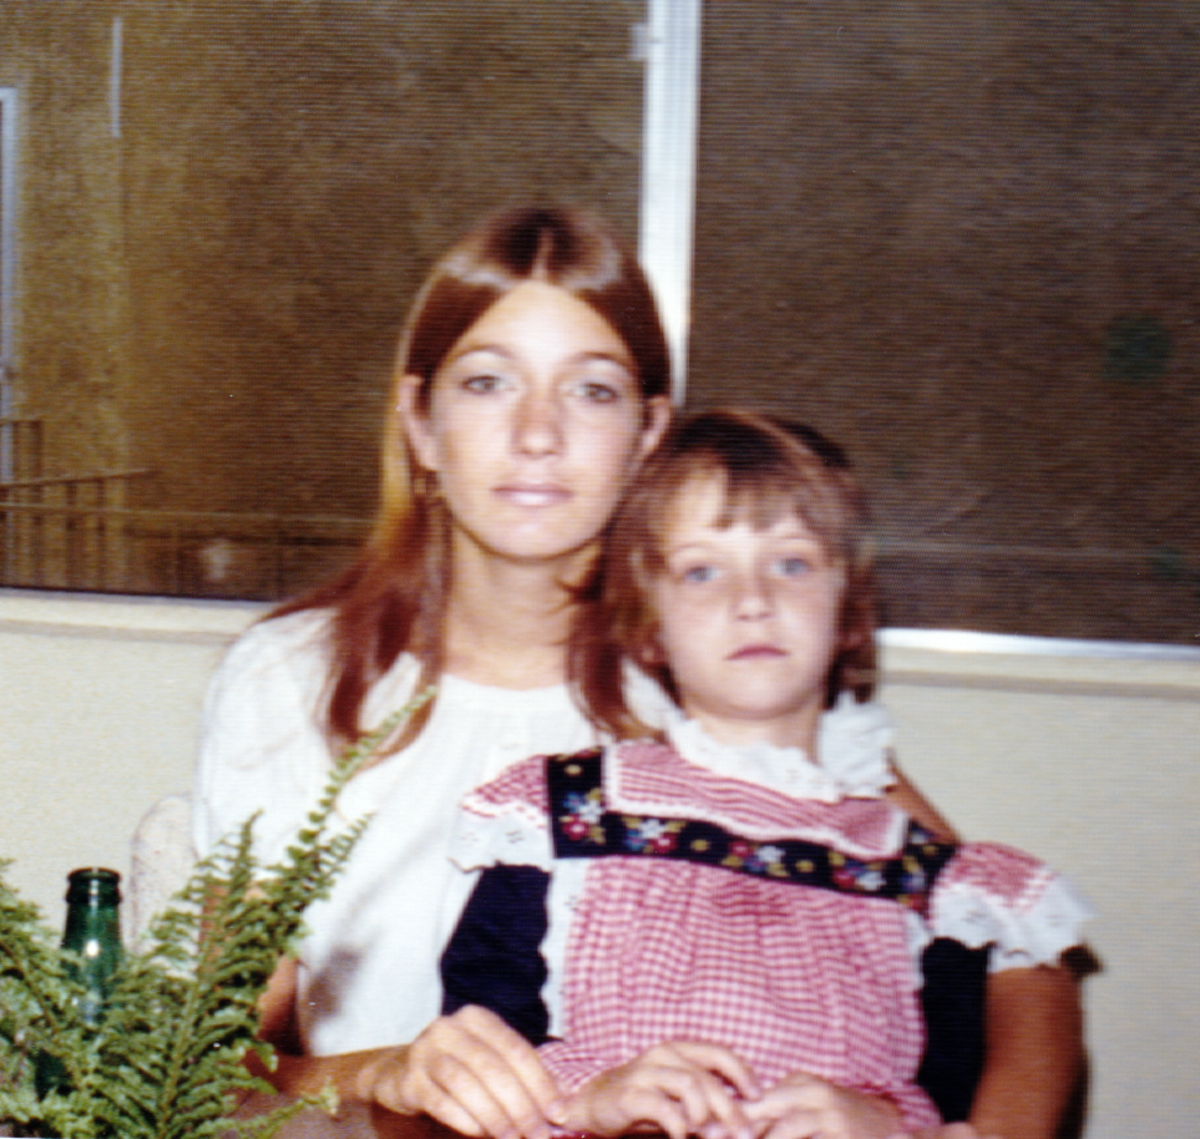 mental-health-self-exploration-the-early-years-with-my-sister